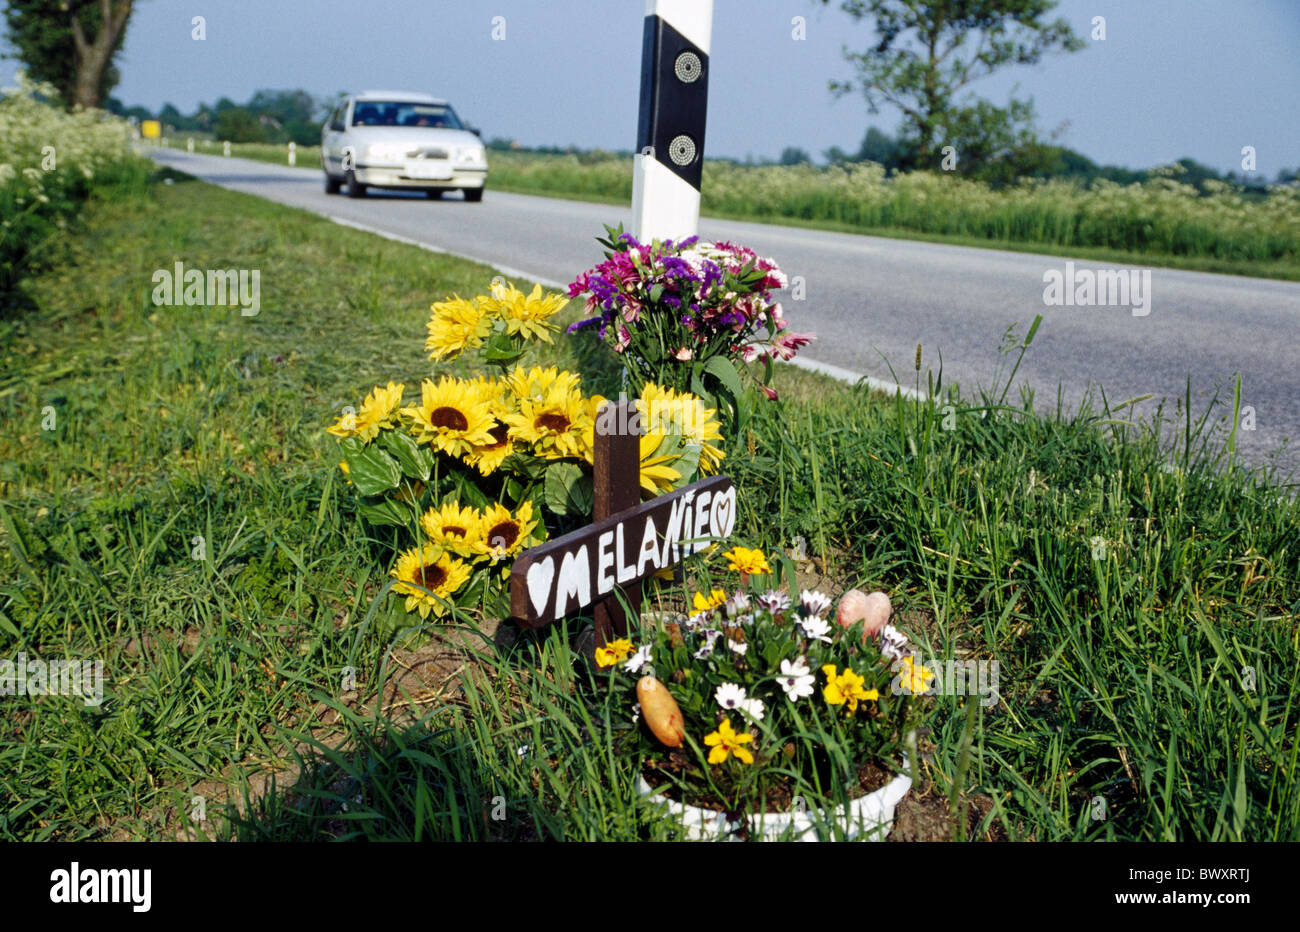 flowers commemorative site cross street edge traffic accident casualty road casualty street victim victim - Stock Image